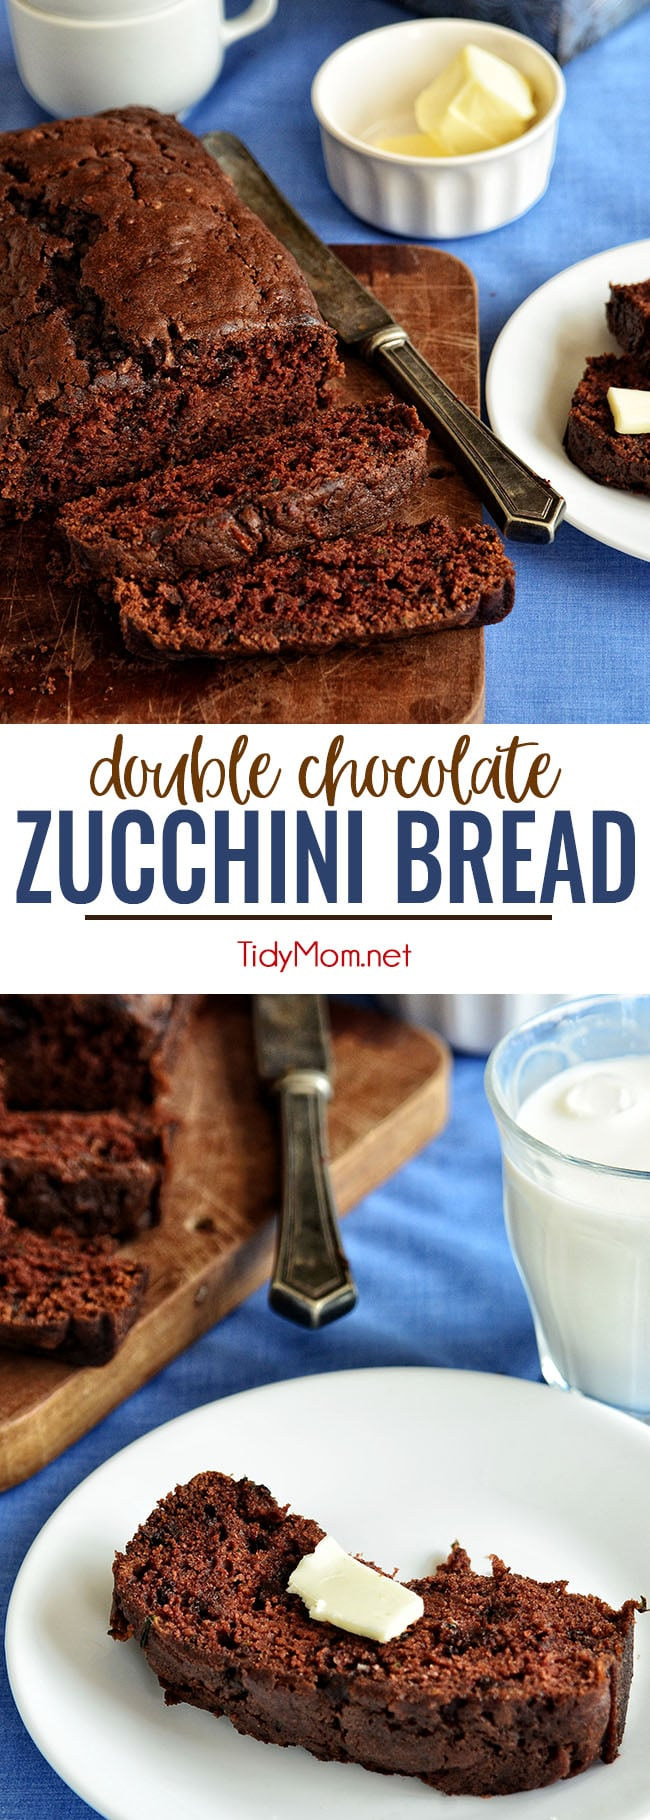 chocolate zucchini bread photo collage